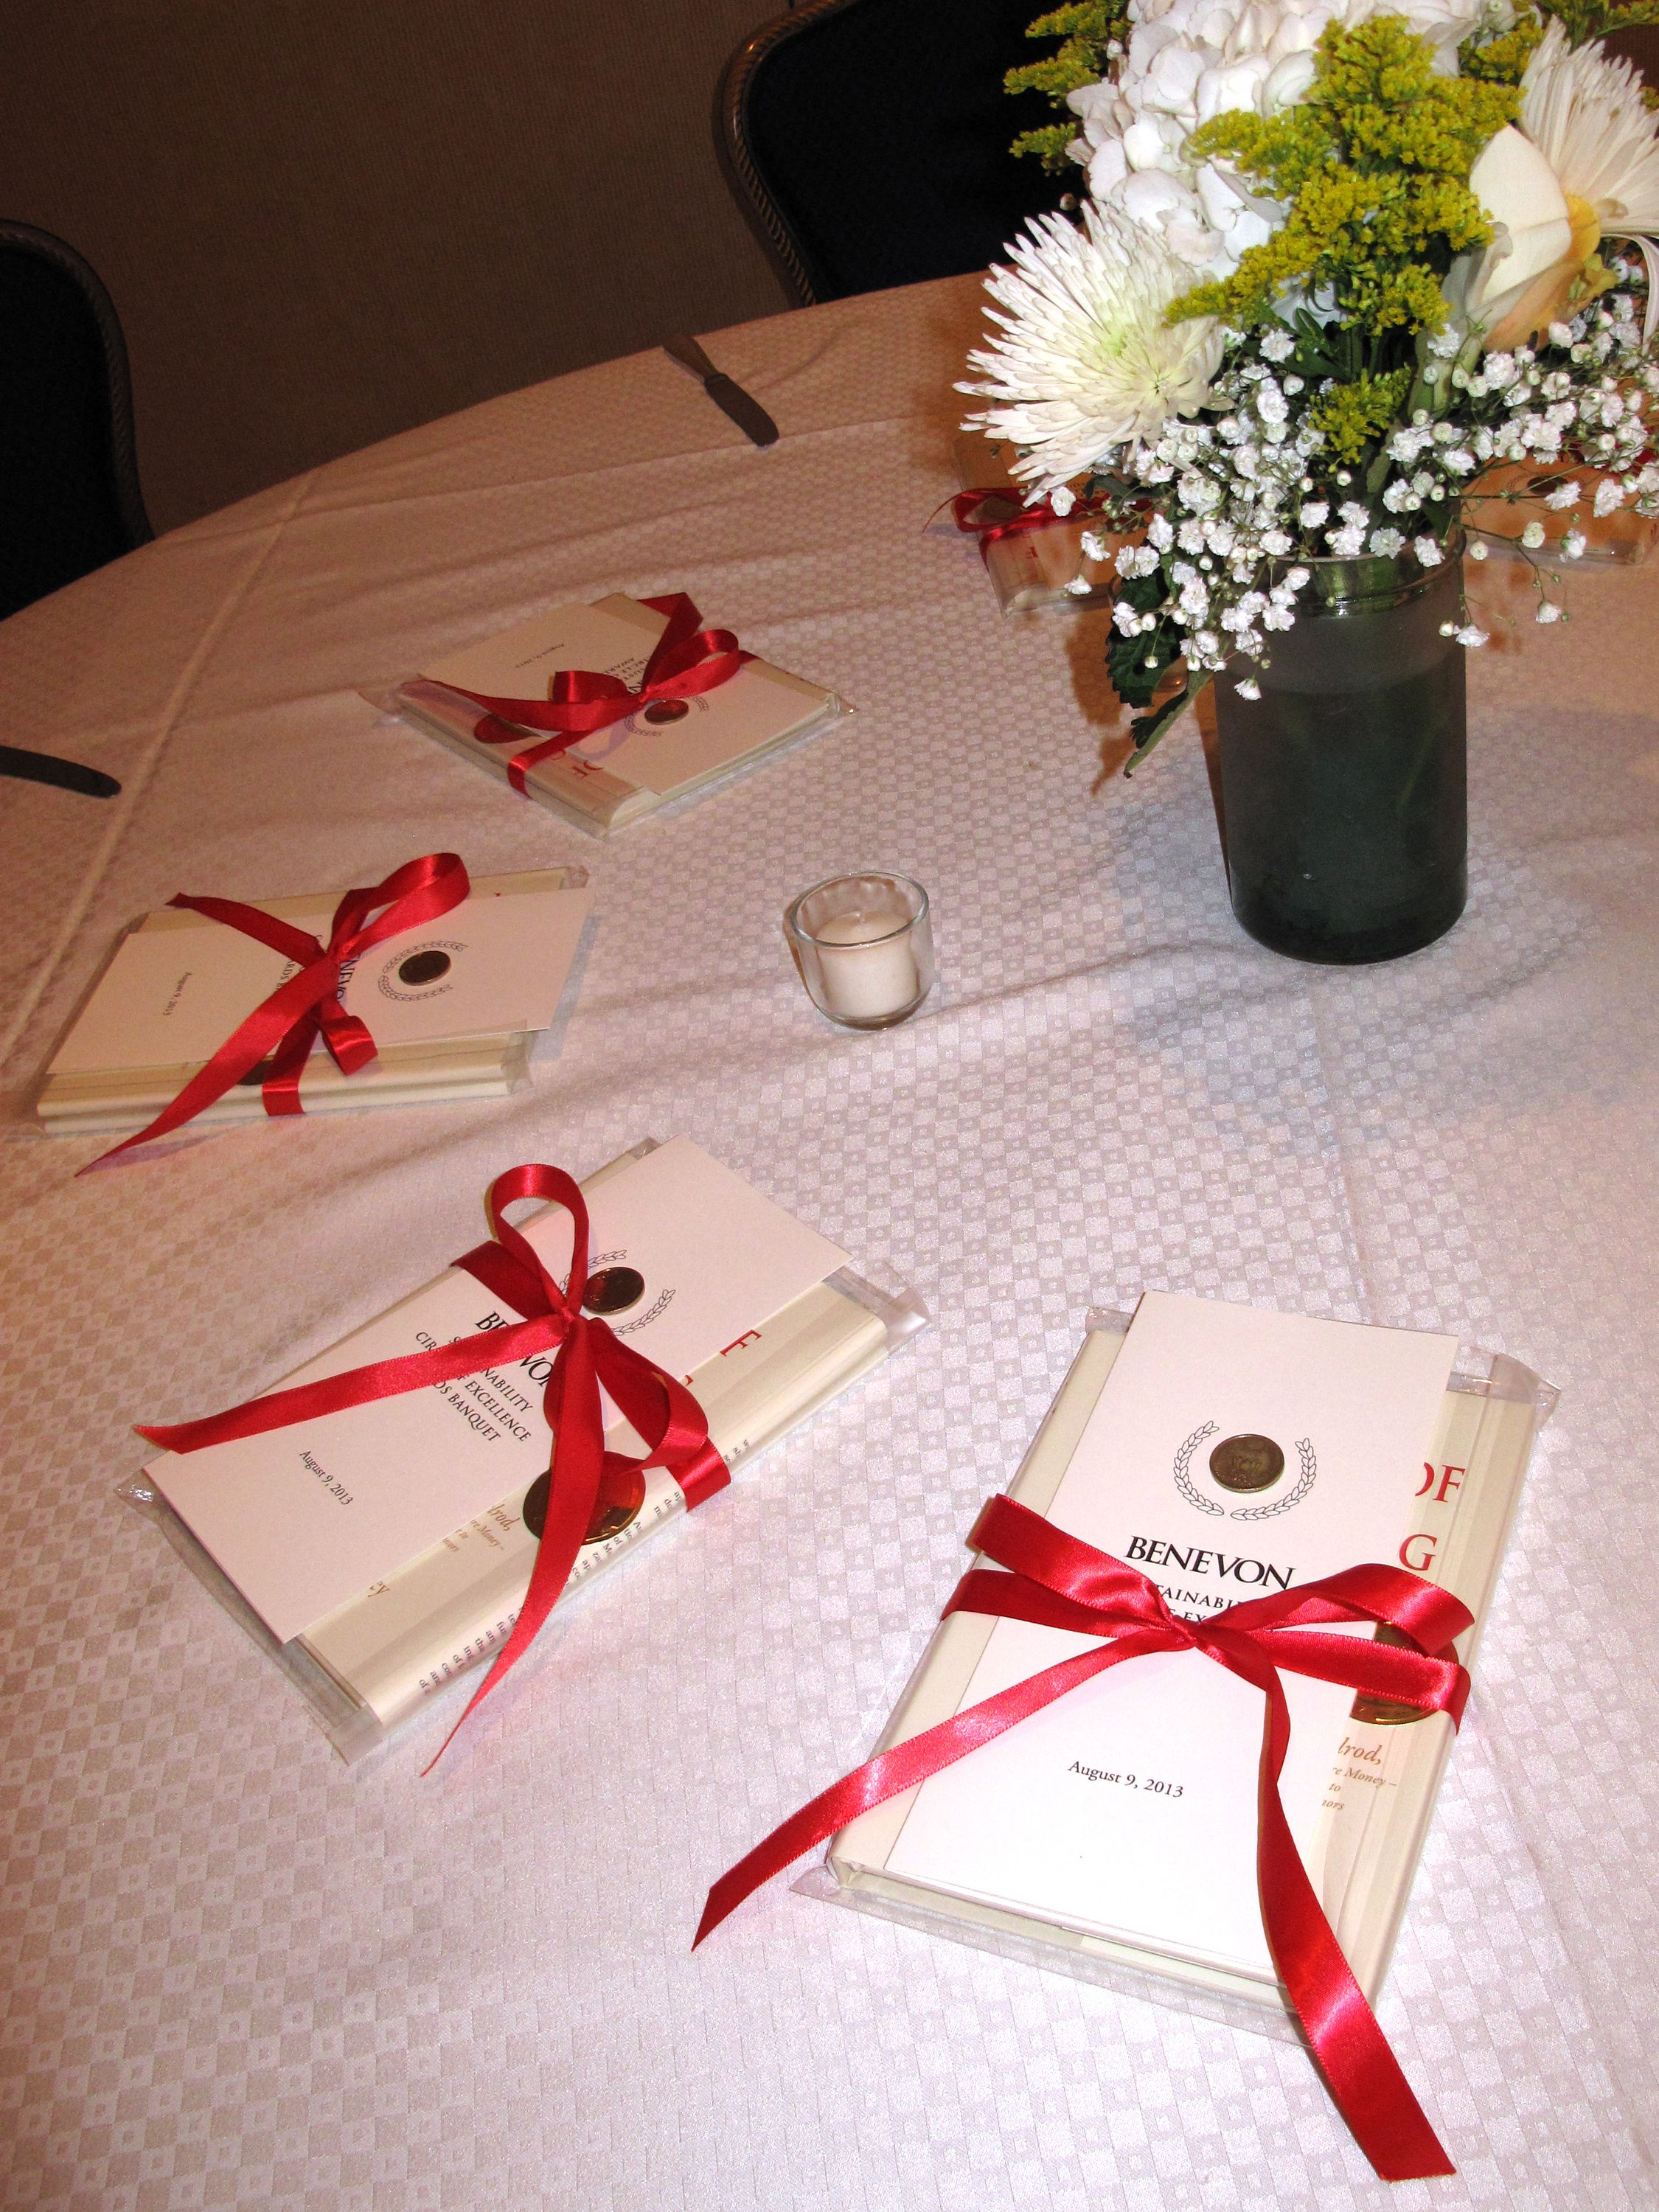 Awards Banquet Program And Gift Books For Special Guests What